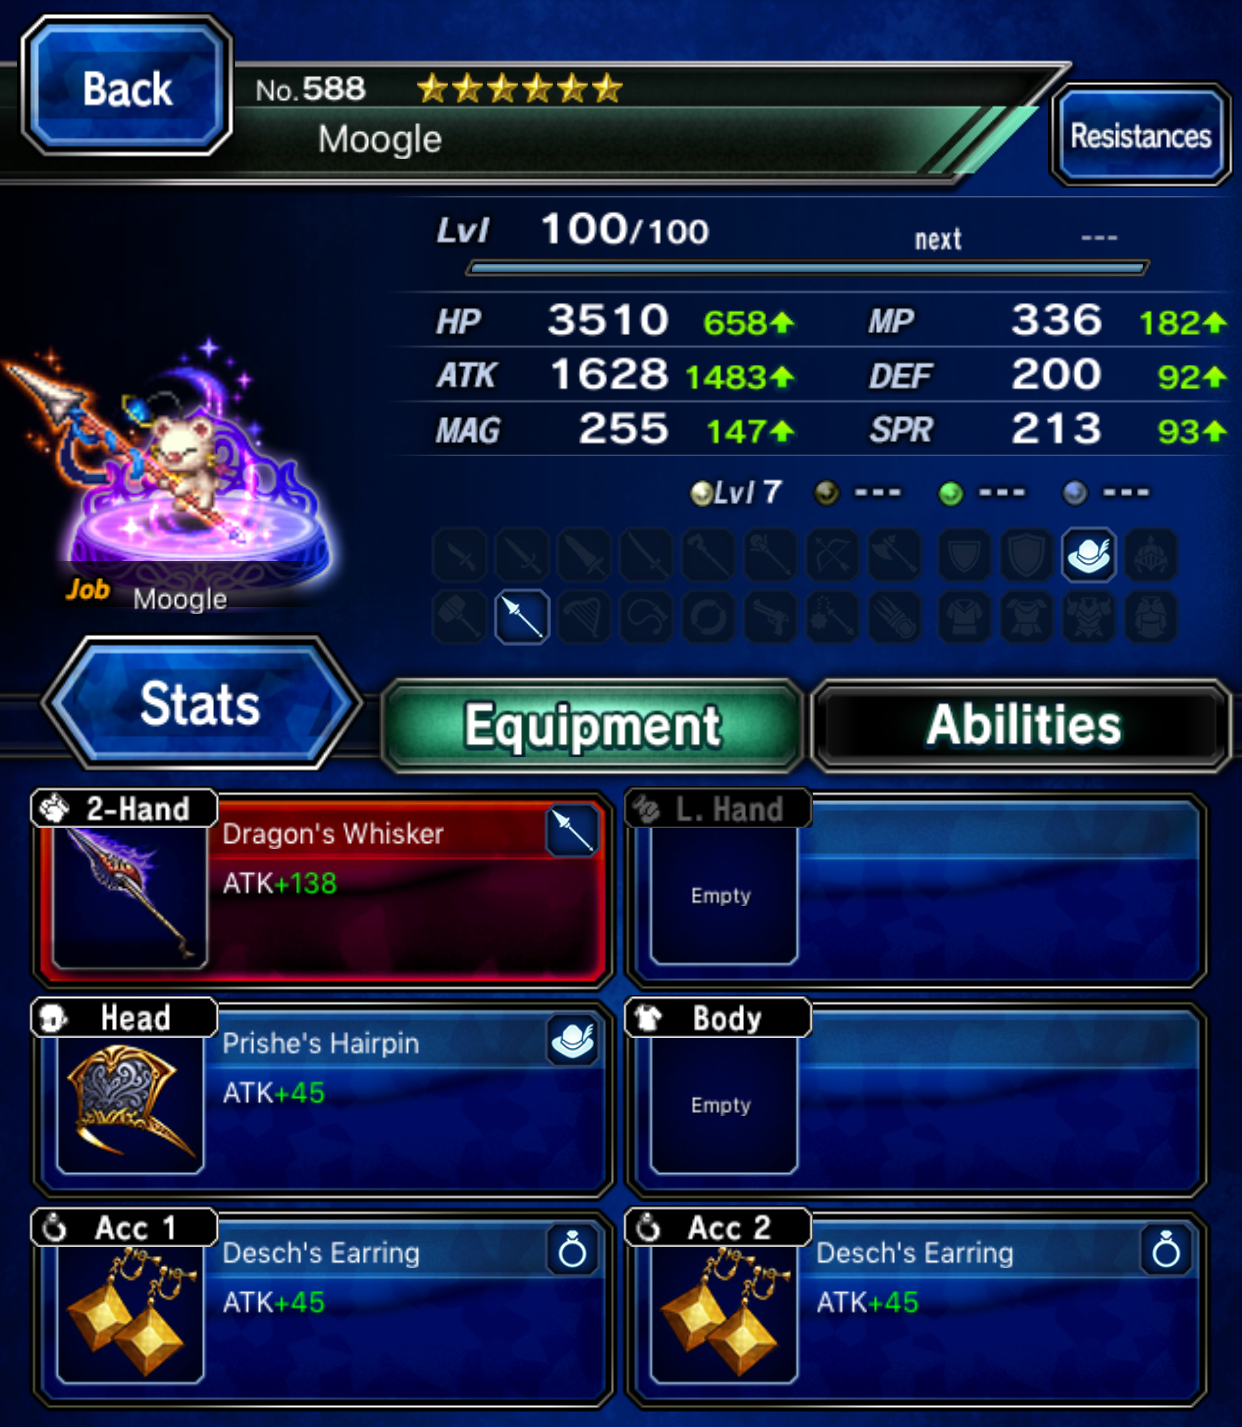 FFBE] Bunny Lady and Egg Girl - GUMI pushing the meta 8 months ahead